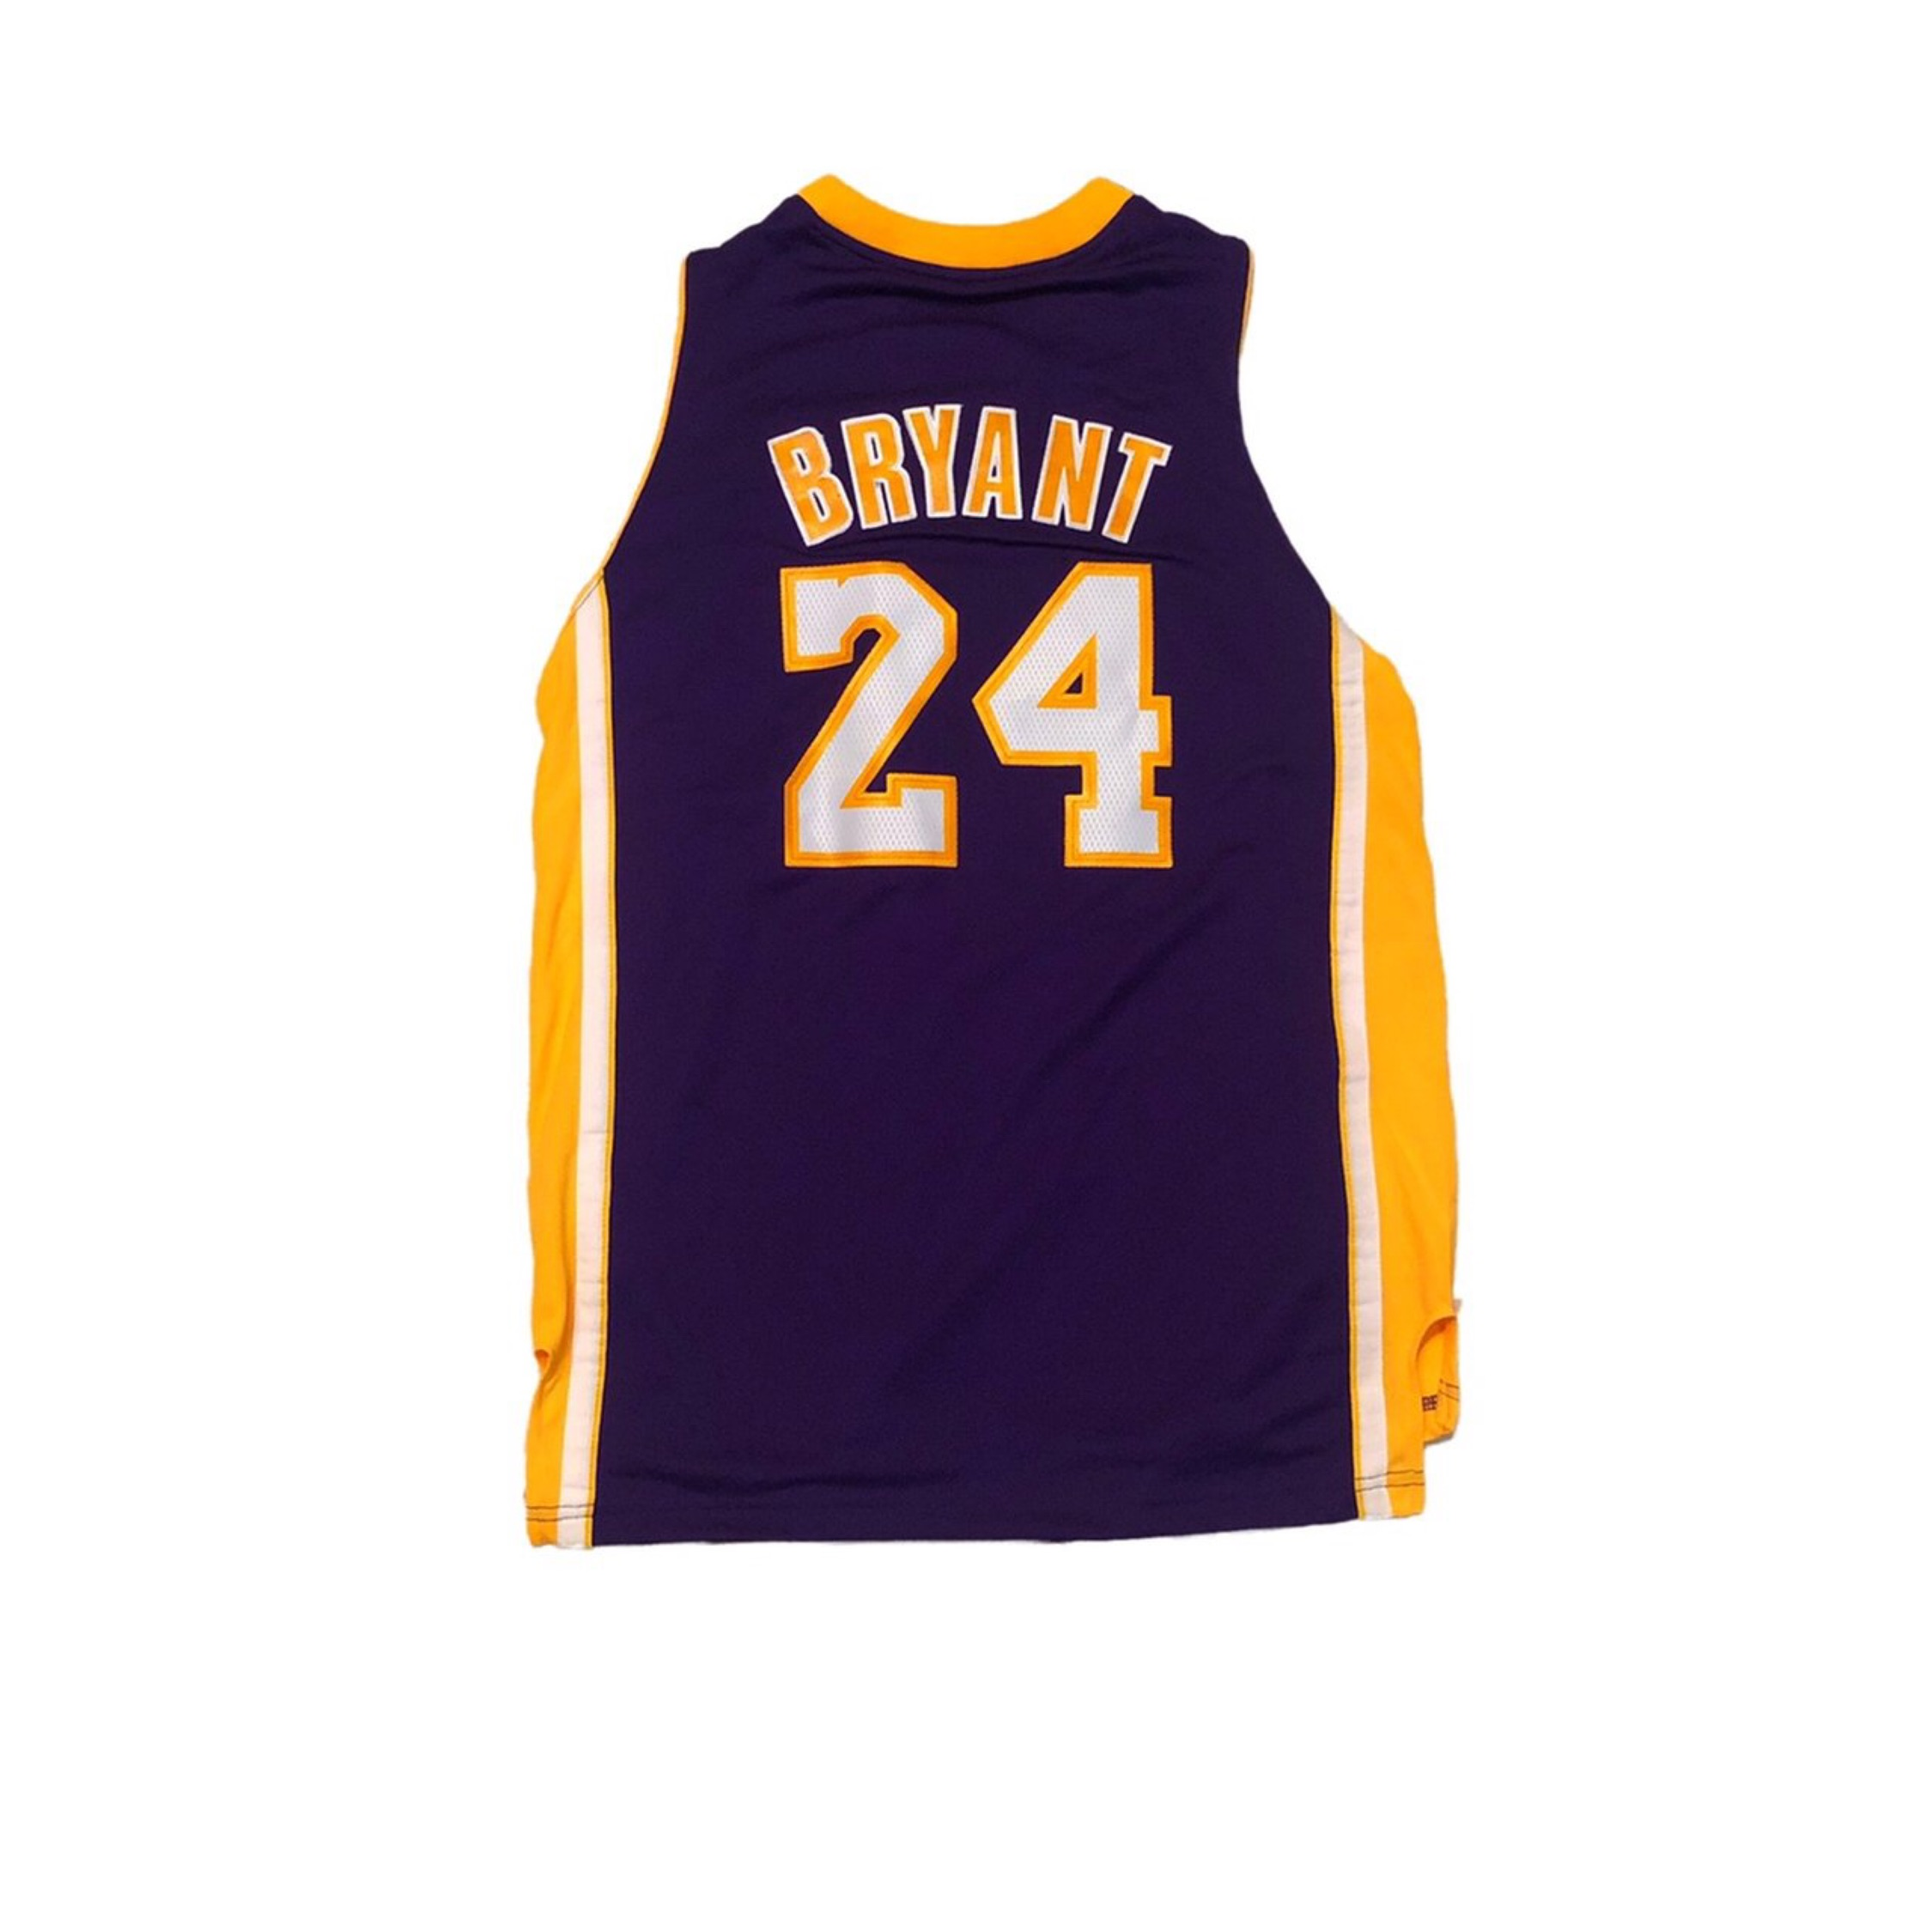 reputable site be9ef bba39 Official Adidas La Lakers Bryant Jersey